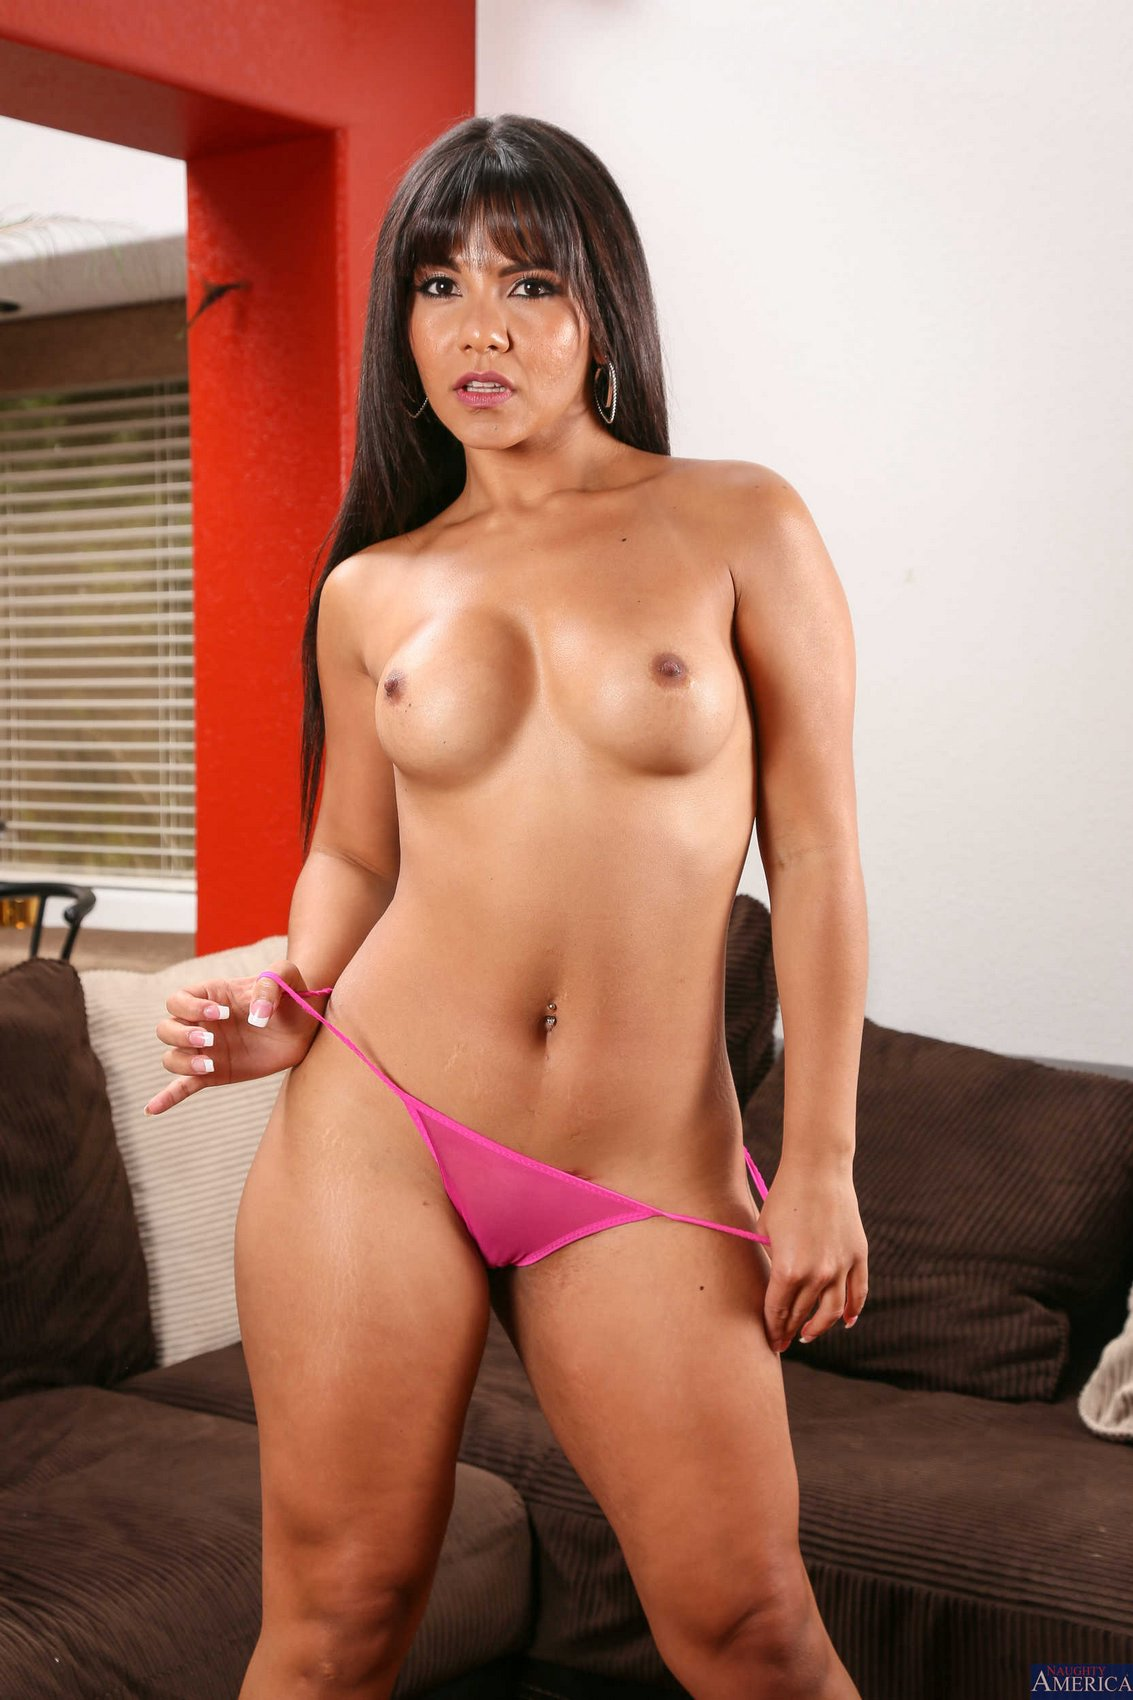 Showing of my asian ass 1fuckdatecom 6